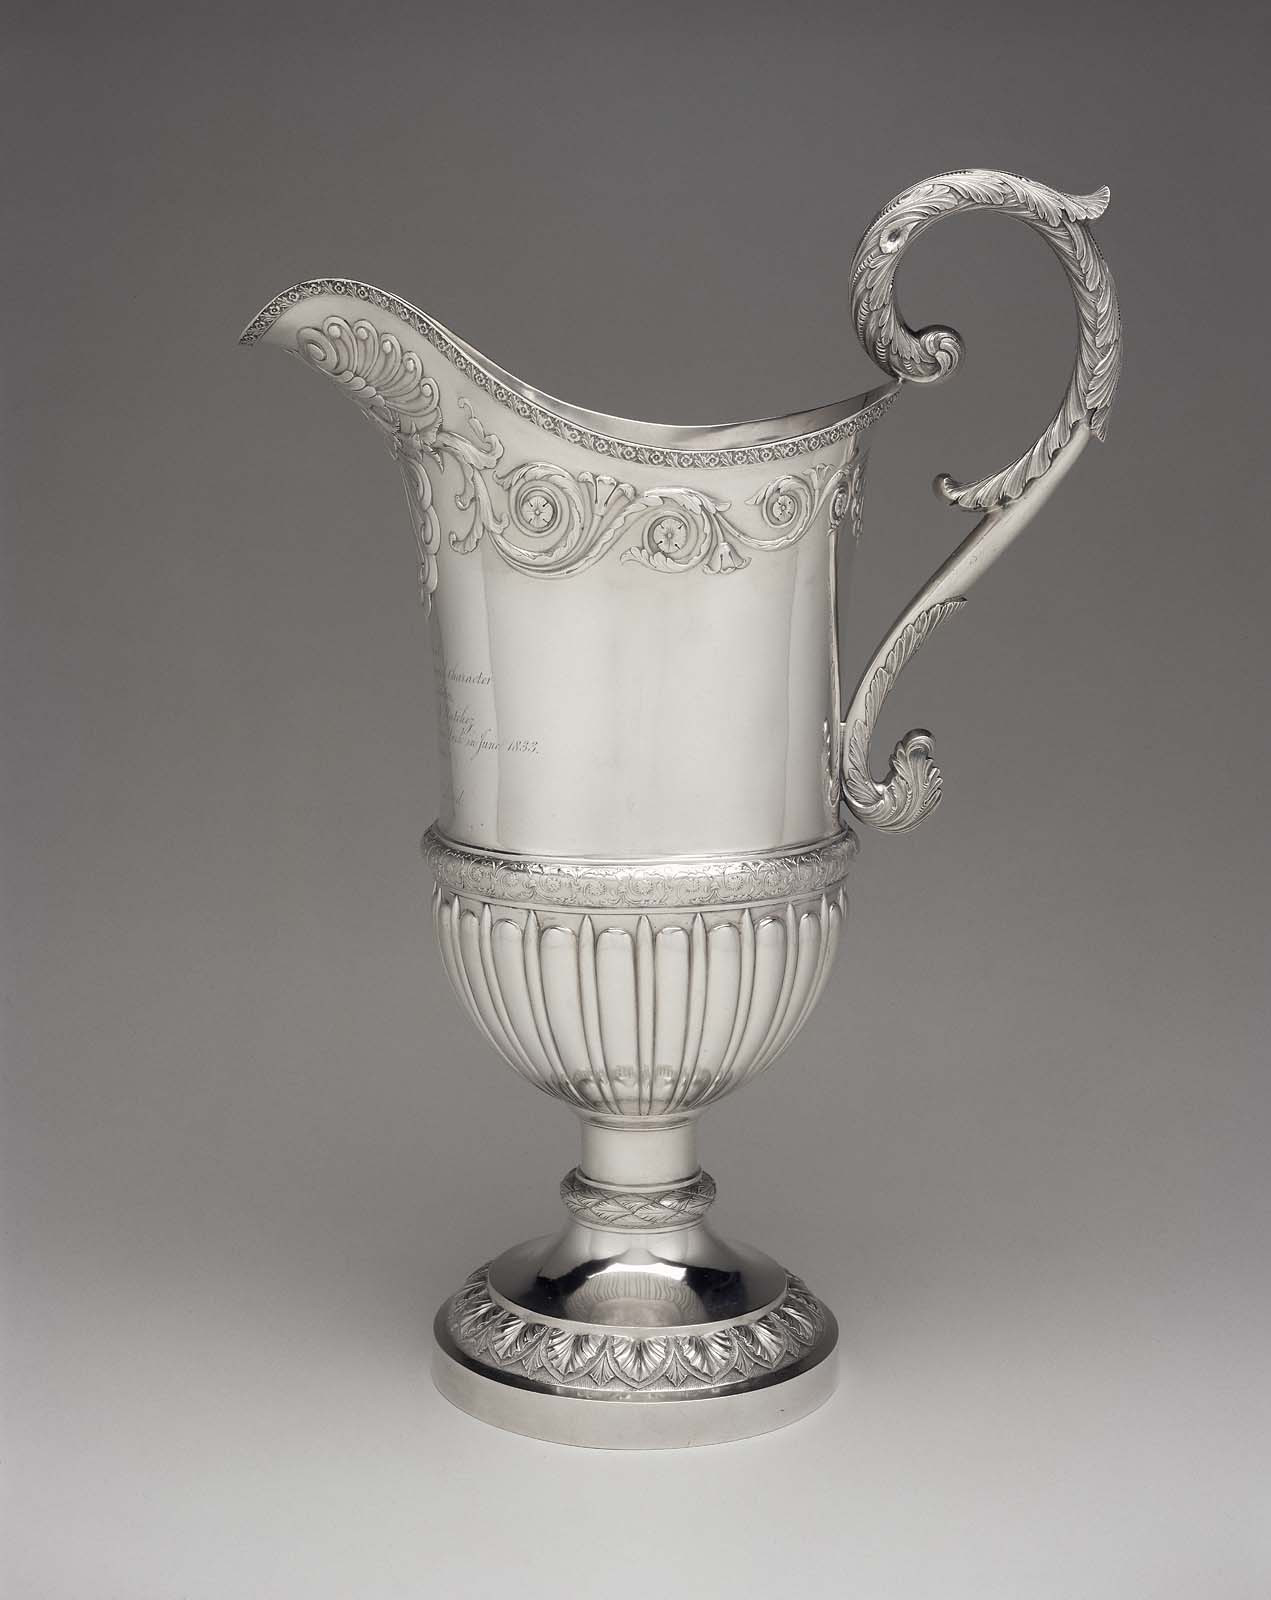 Lalique Vase with Doves Of Ewer Museum Of Fine Arts Boston within You are Here